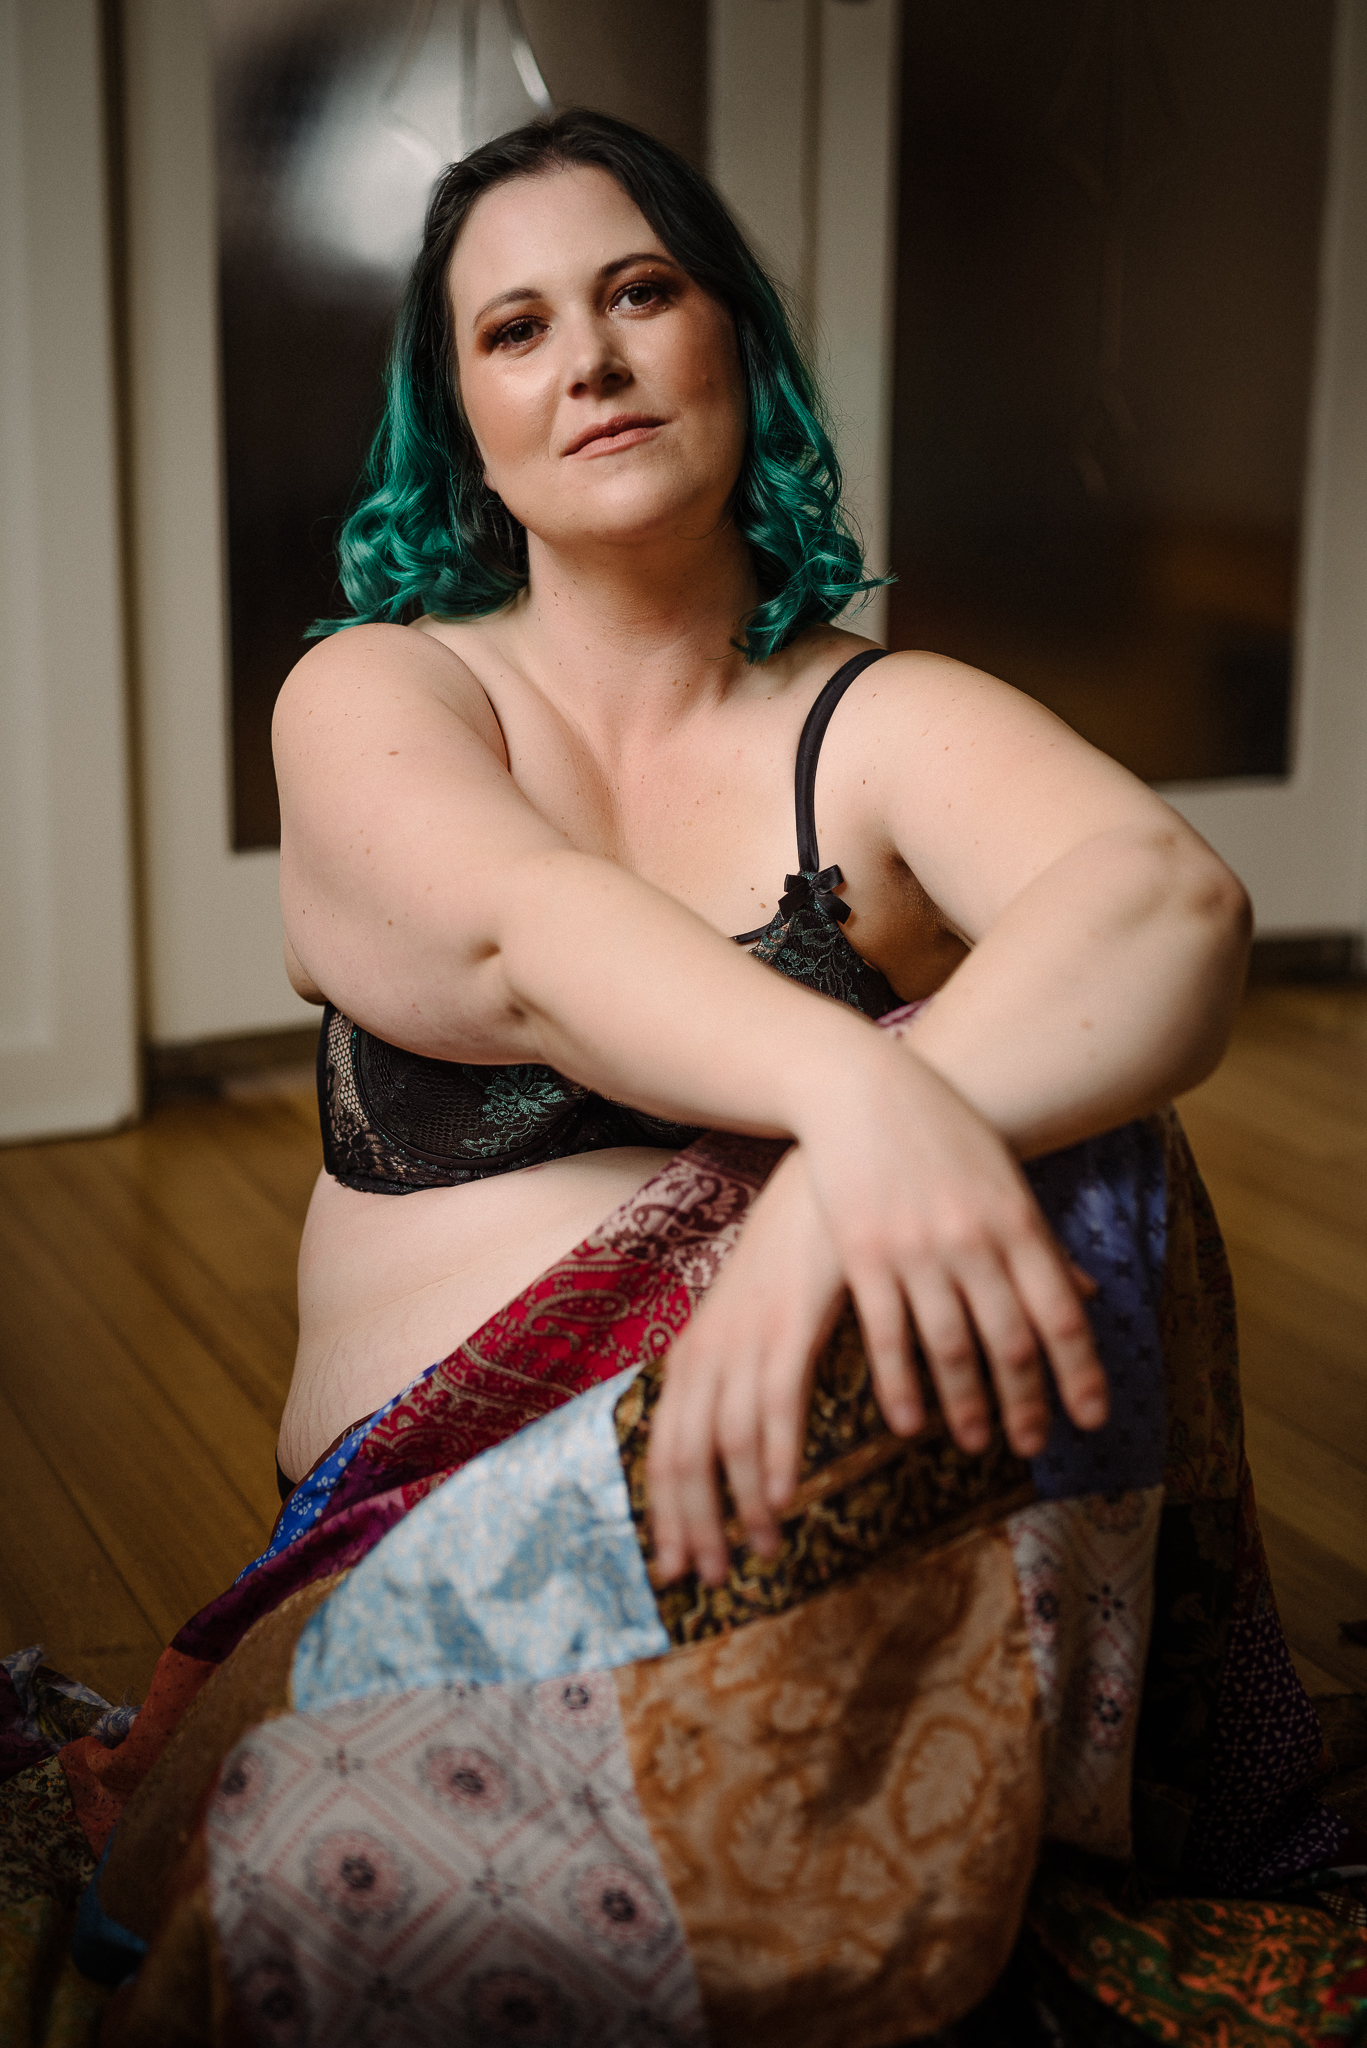 Portrait of a lady with green hair and a colourful skirt